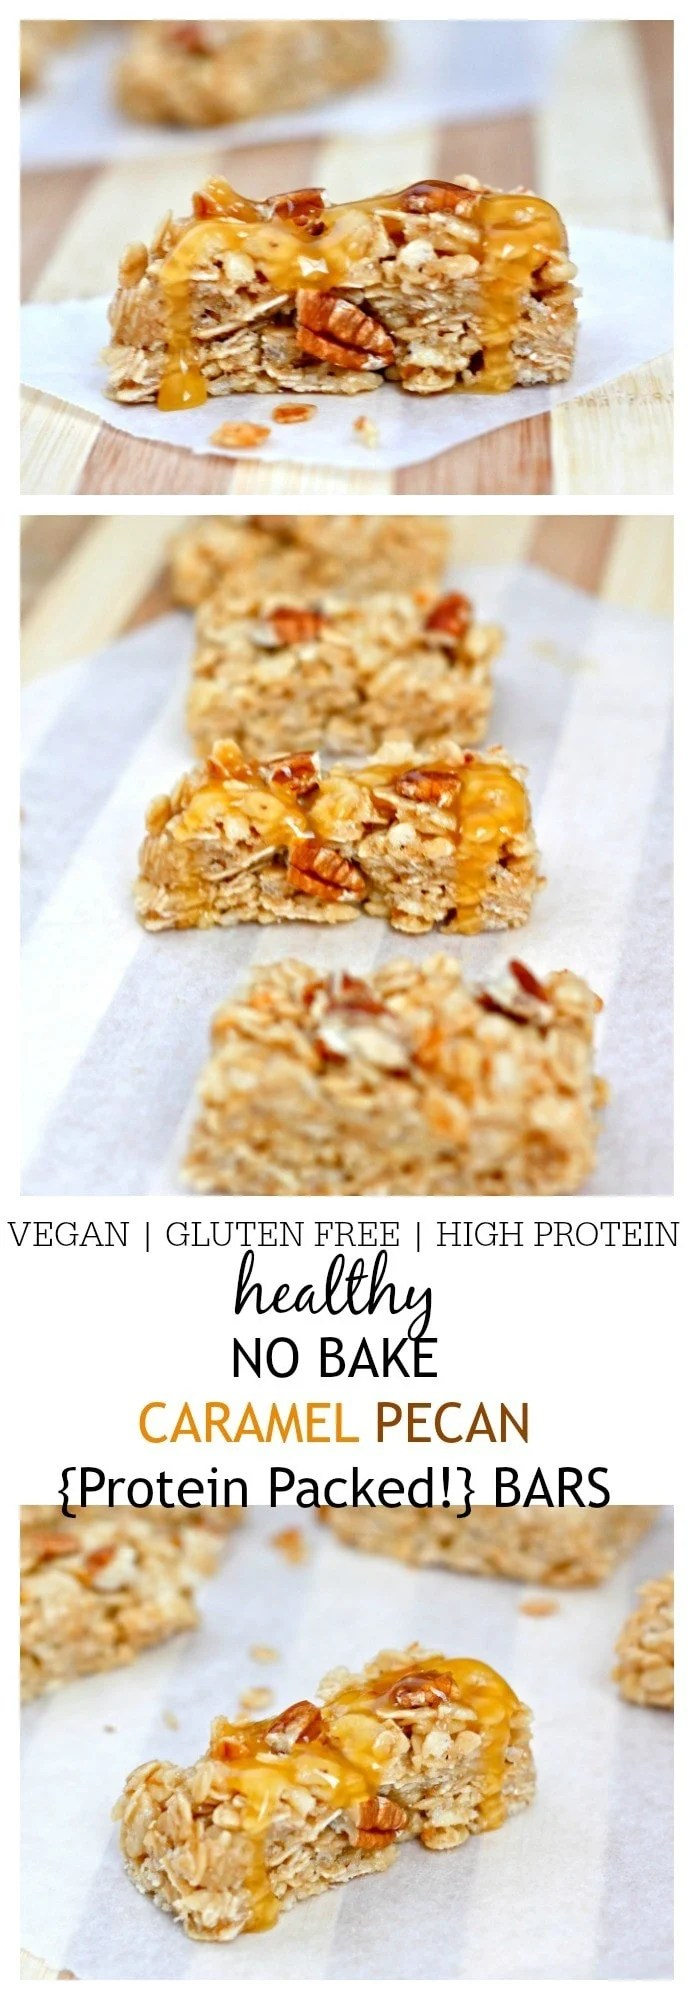 Healthy No Bake Caramel Pecan Bars- Healthy No Bake Caramel Pecan Bars which take less than 10 minutes to whip up! These super simple bars are vegan, gluten free, high protein and very low in sugar- Grab this sensible snack! @thebigmansworld -thebigmansworld.com